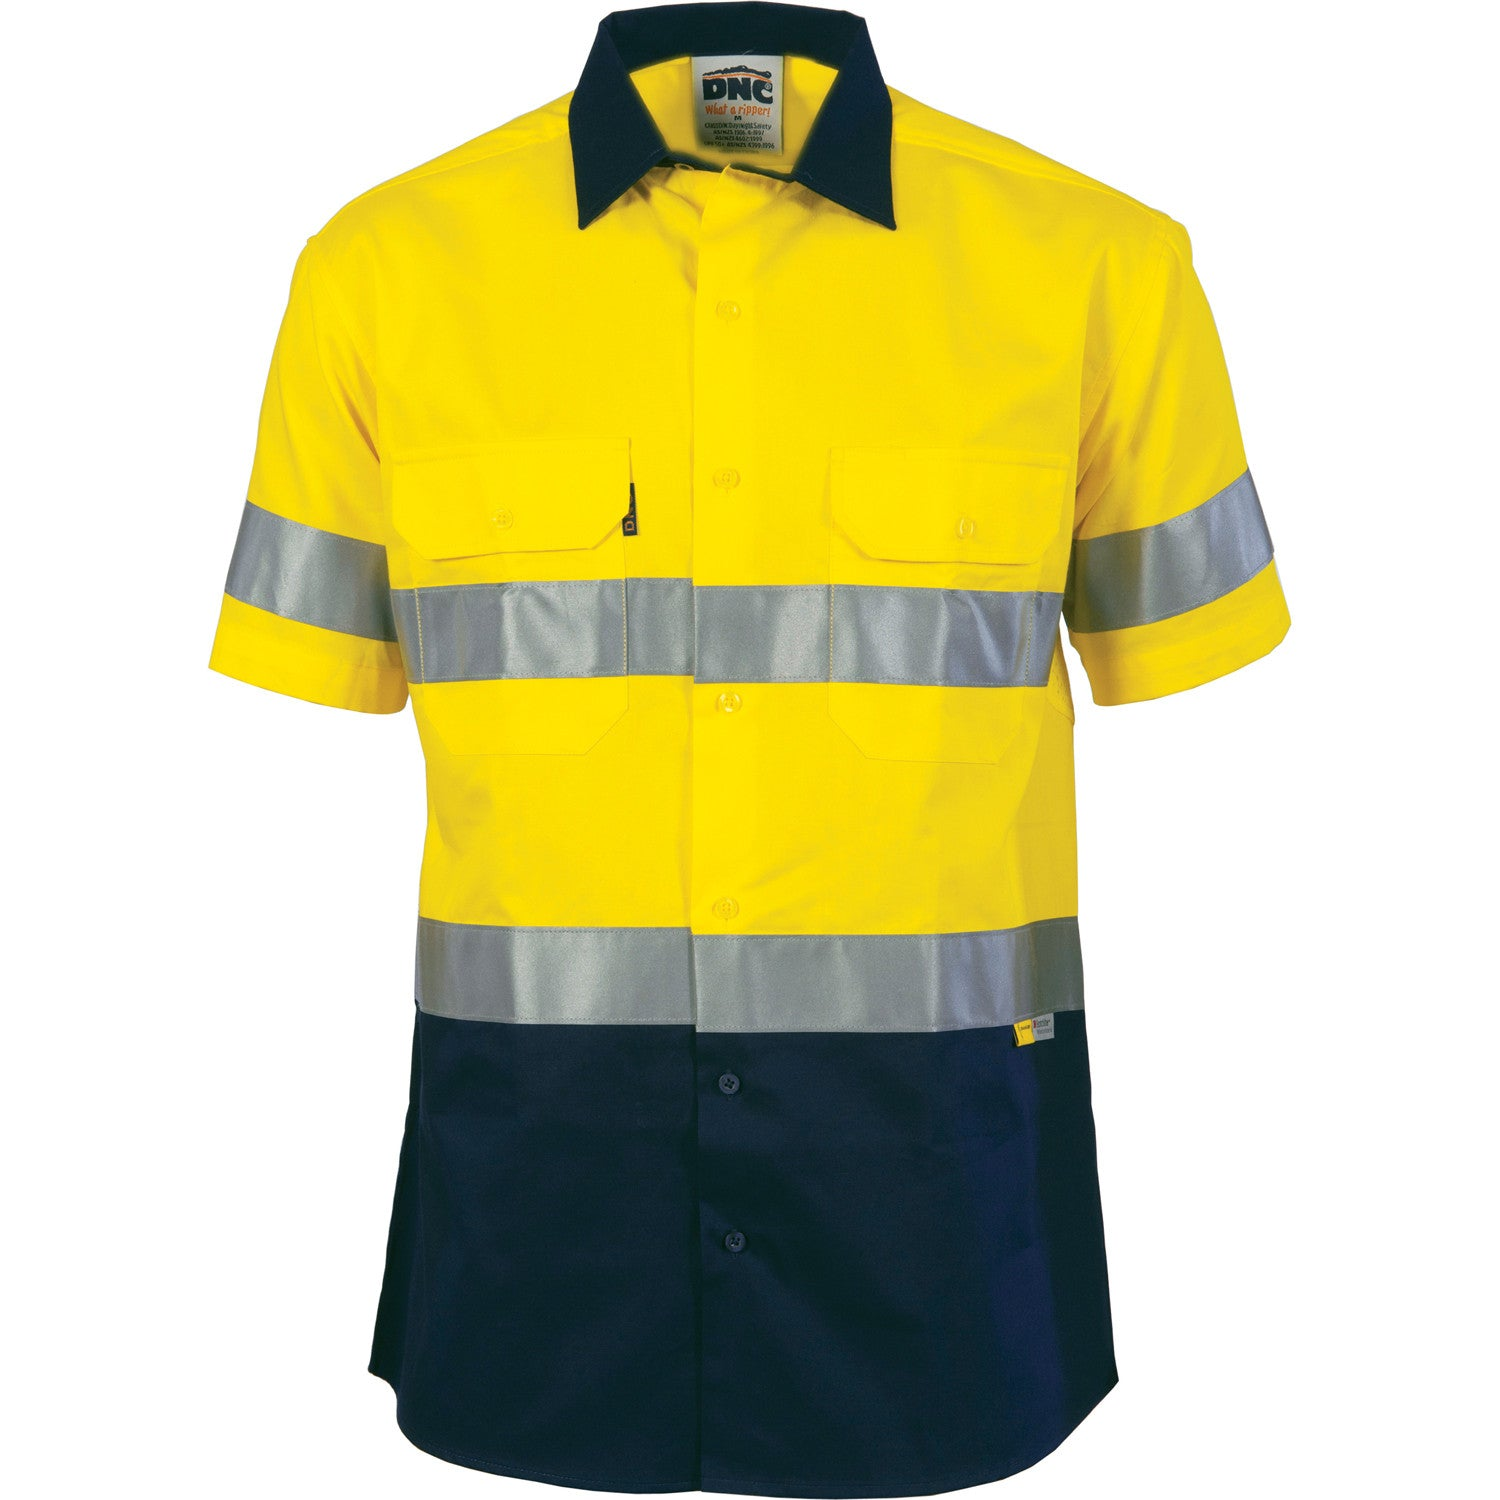 DNC HiVis Two Tone Cotton Shirt with 3M R/Tape, Short Sleeve (3833)